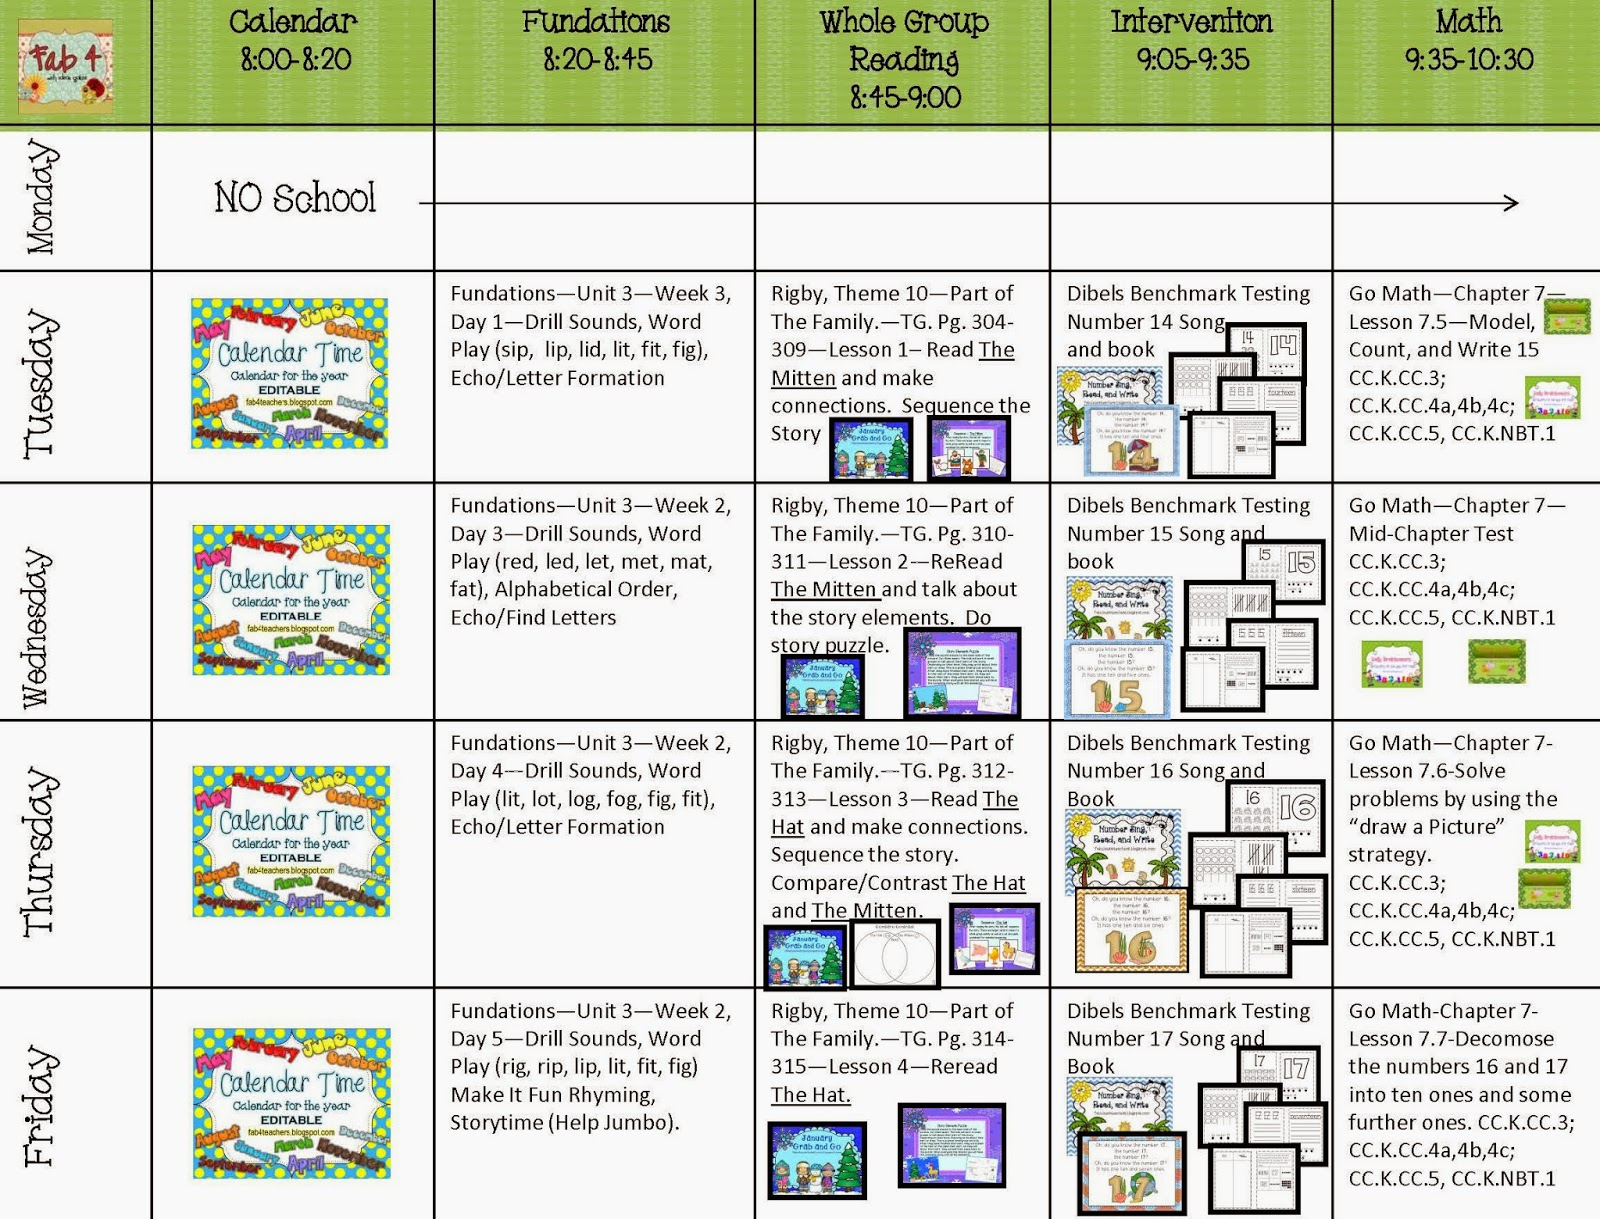 Lesson Plans for Week of January 21, 2014